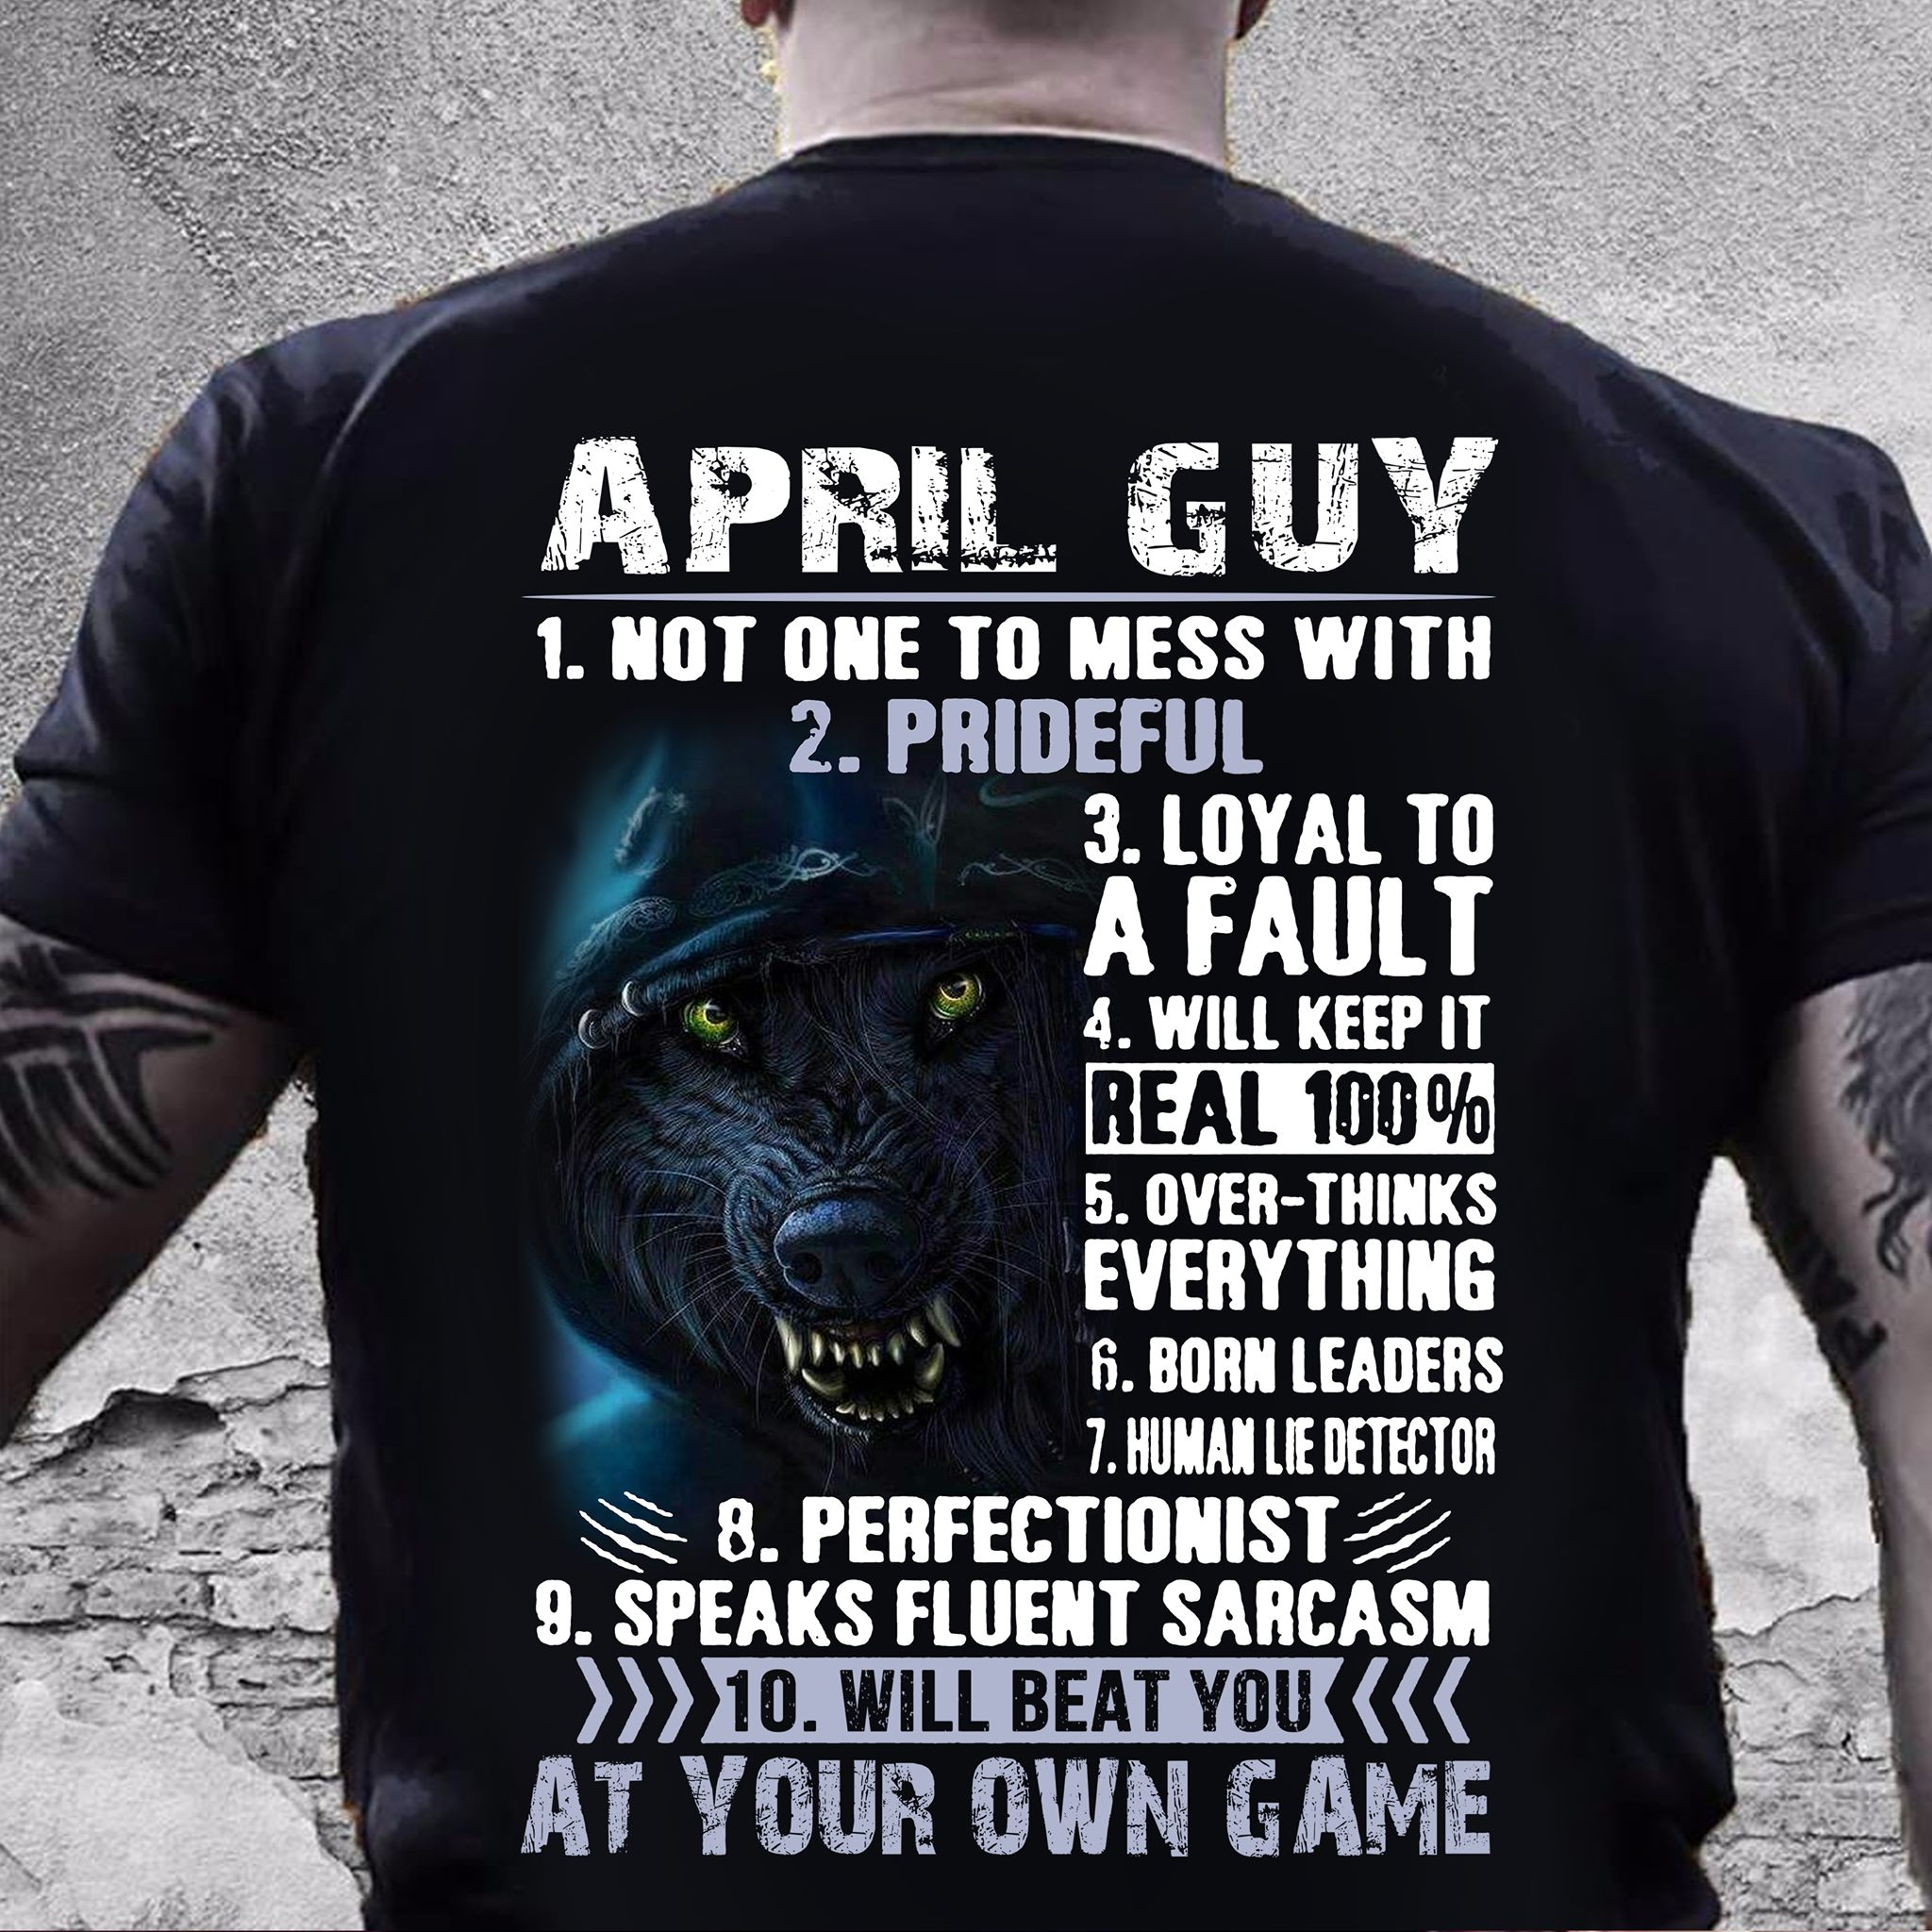 april guy at your own game